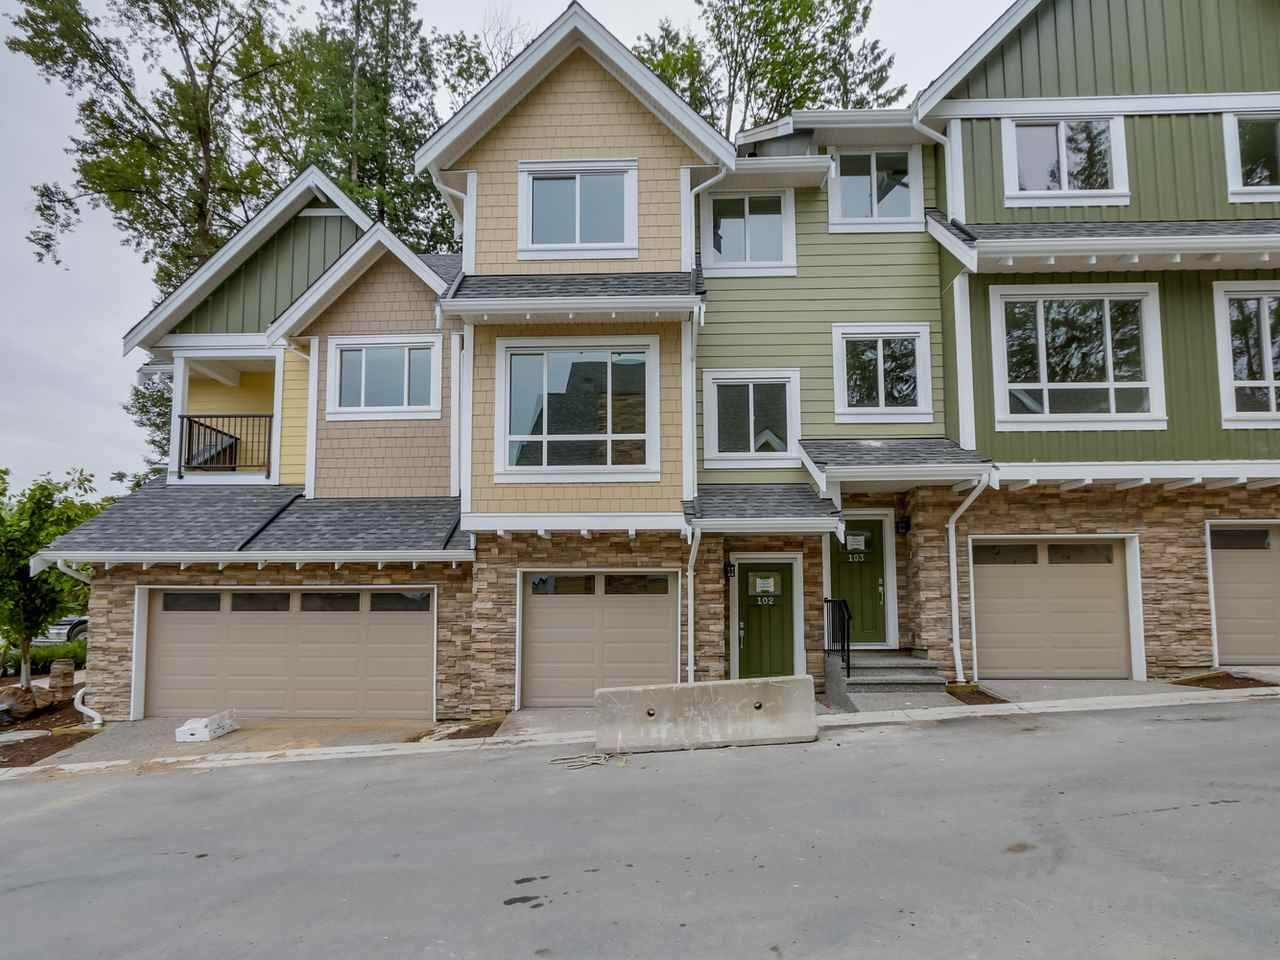 """Main Photo: 106 1405 DAYTON Avenue in Coquitlam: Burke Mountain Townhouse for sale in """"ERICA"""" : MLS®# R2084440"""